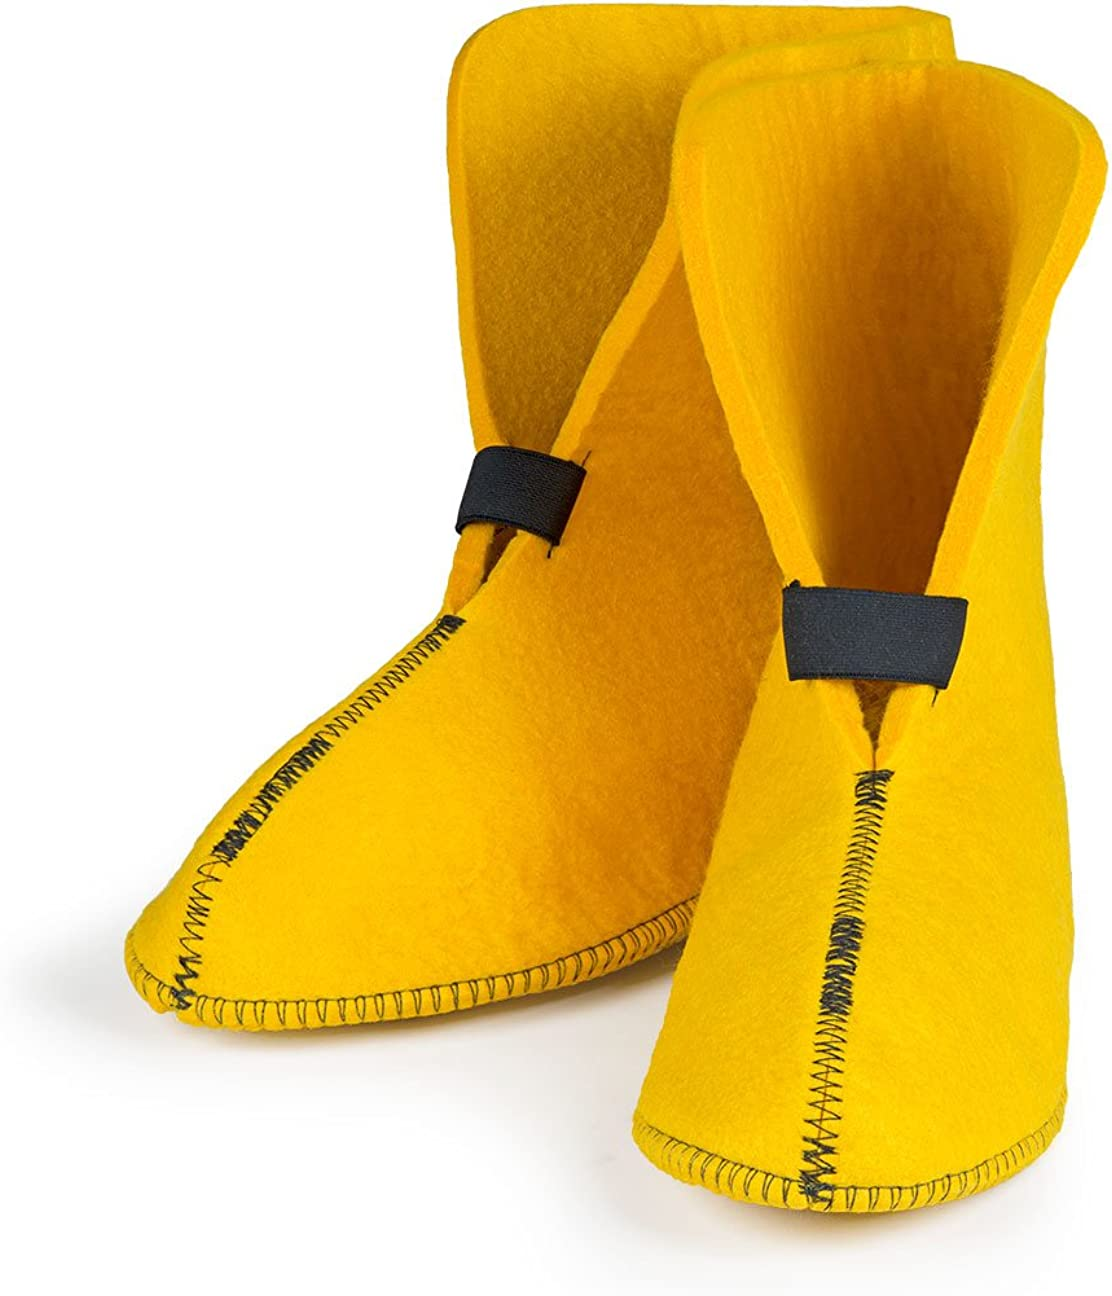 FELT Replacement Boot Liners 75 Wool, Yellow 624 626